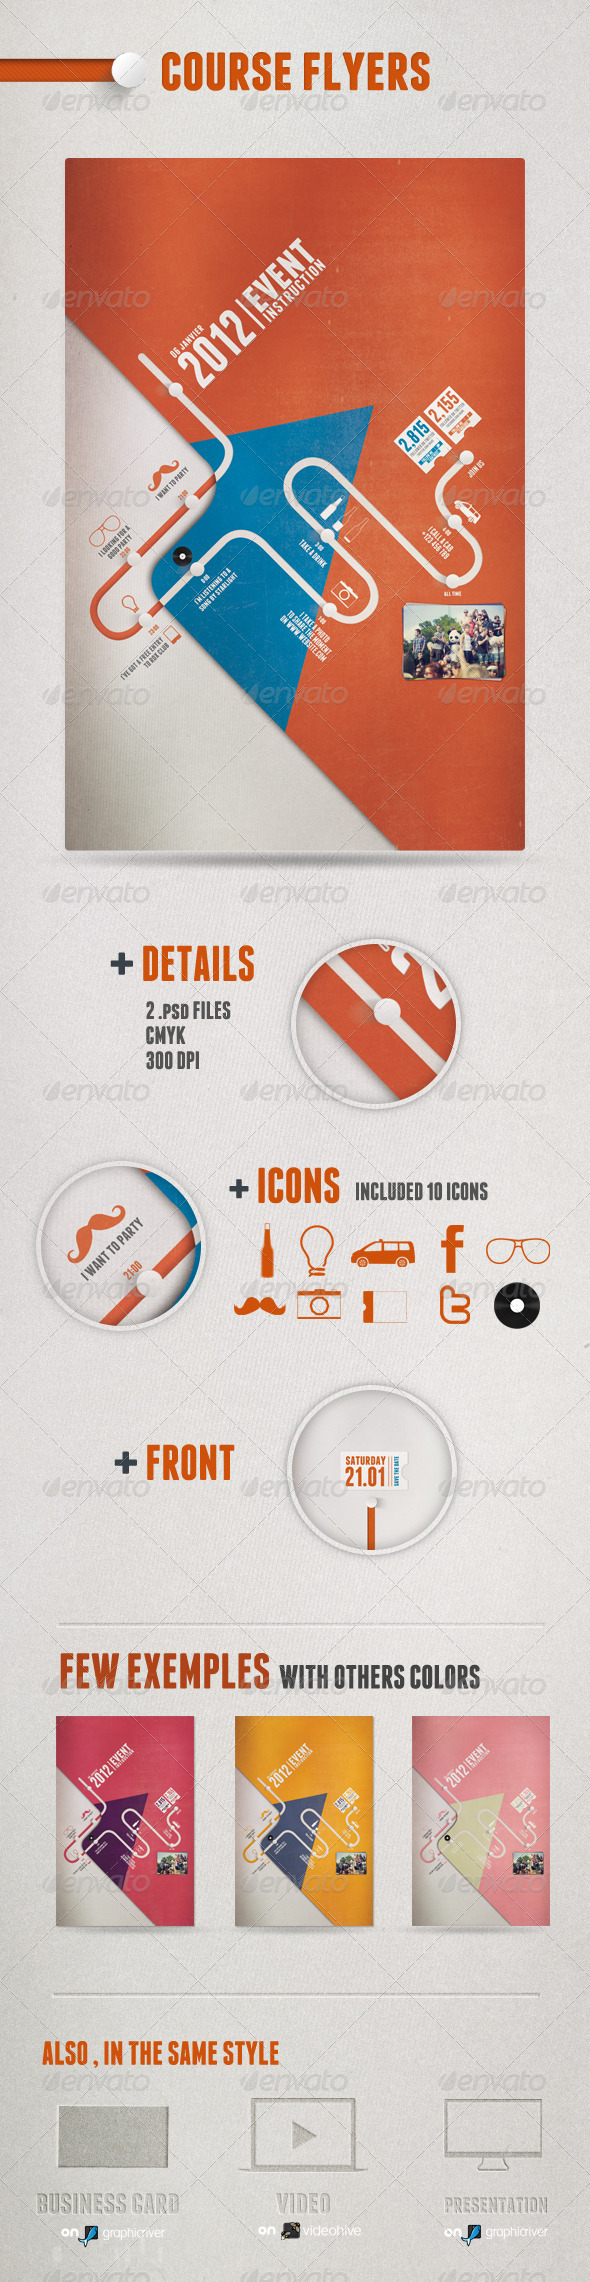 GraphicRiver Course Flyers 1217083